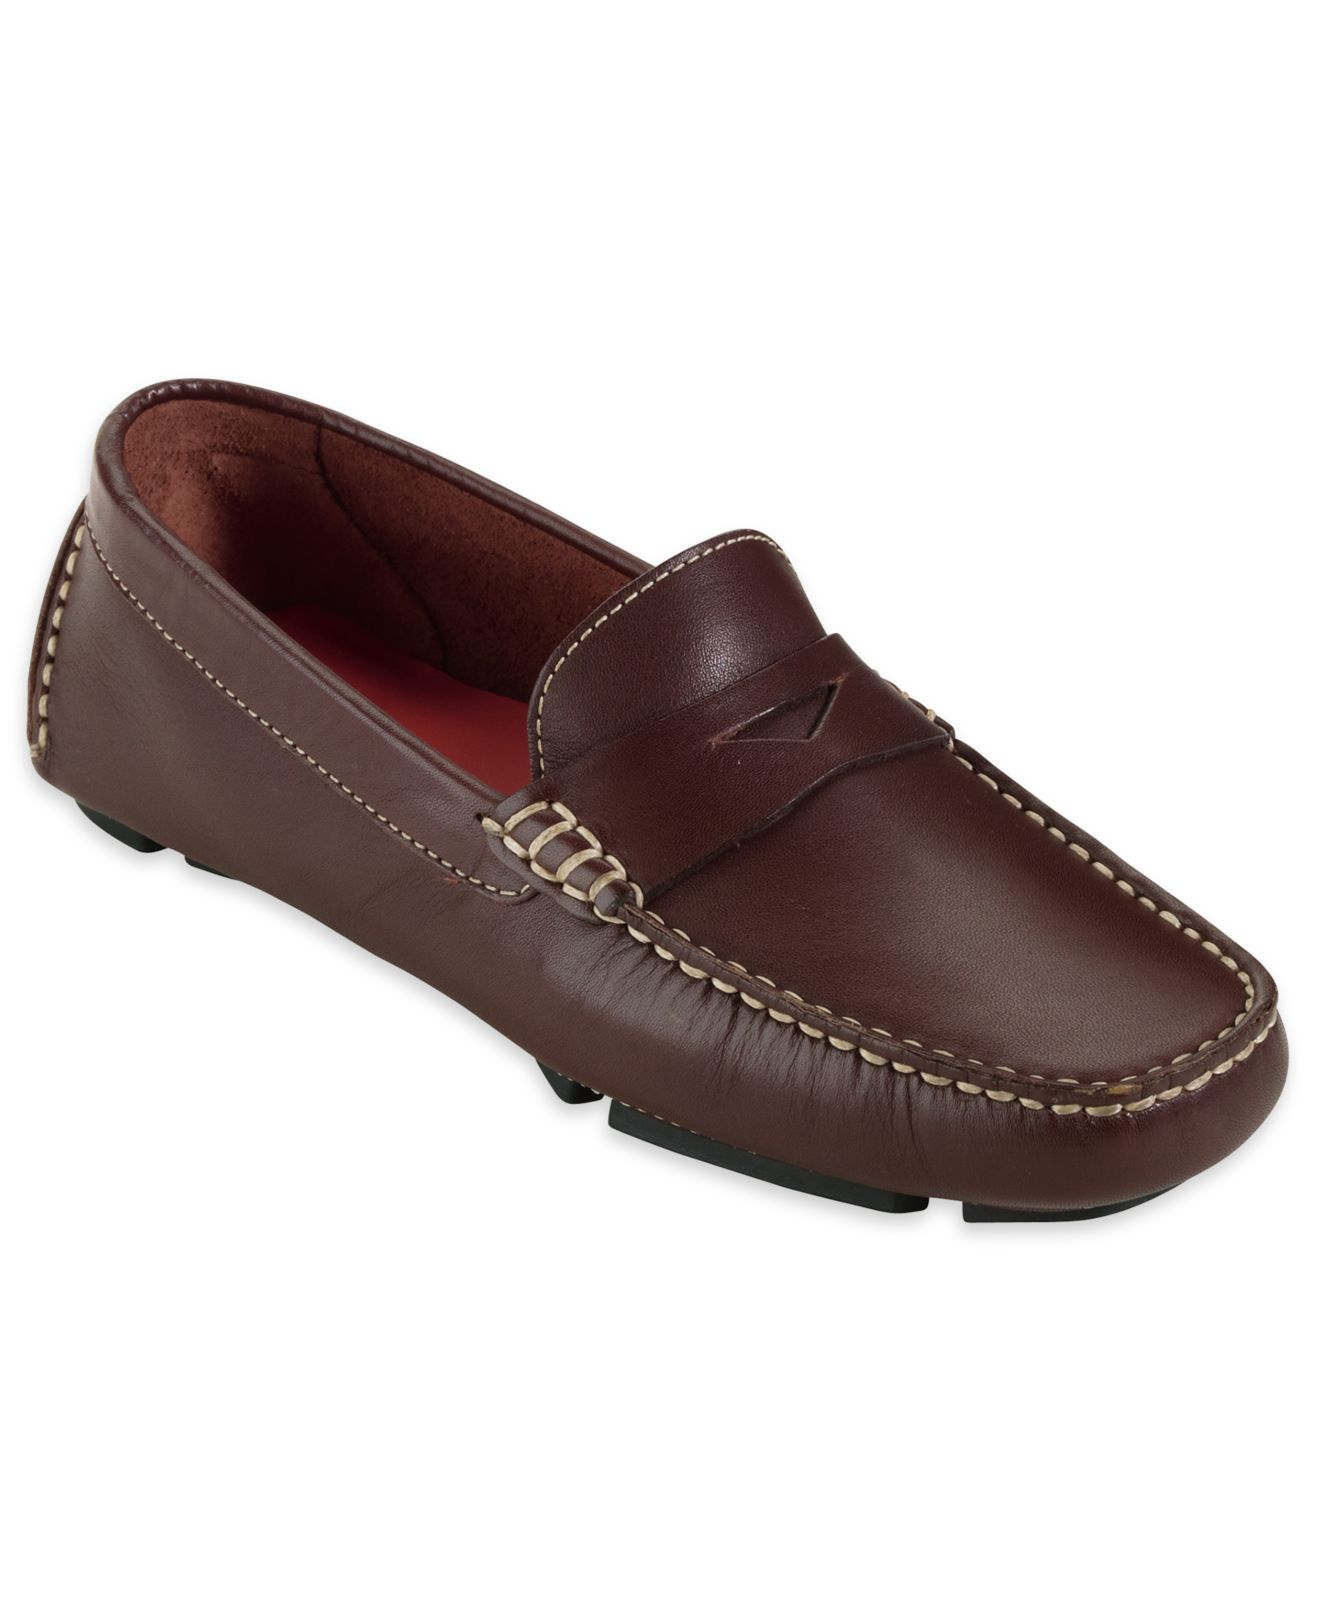 Cole Haan Trillby Driver qfuUcZ1cWZ